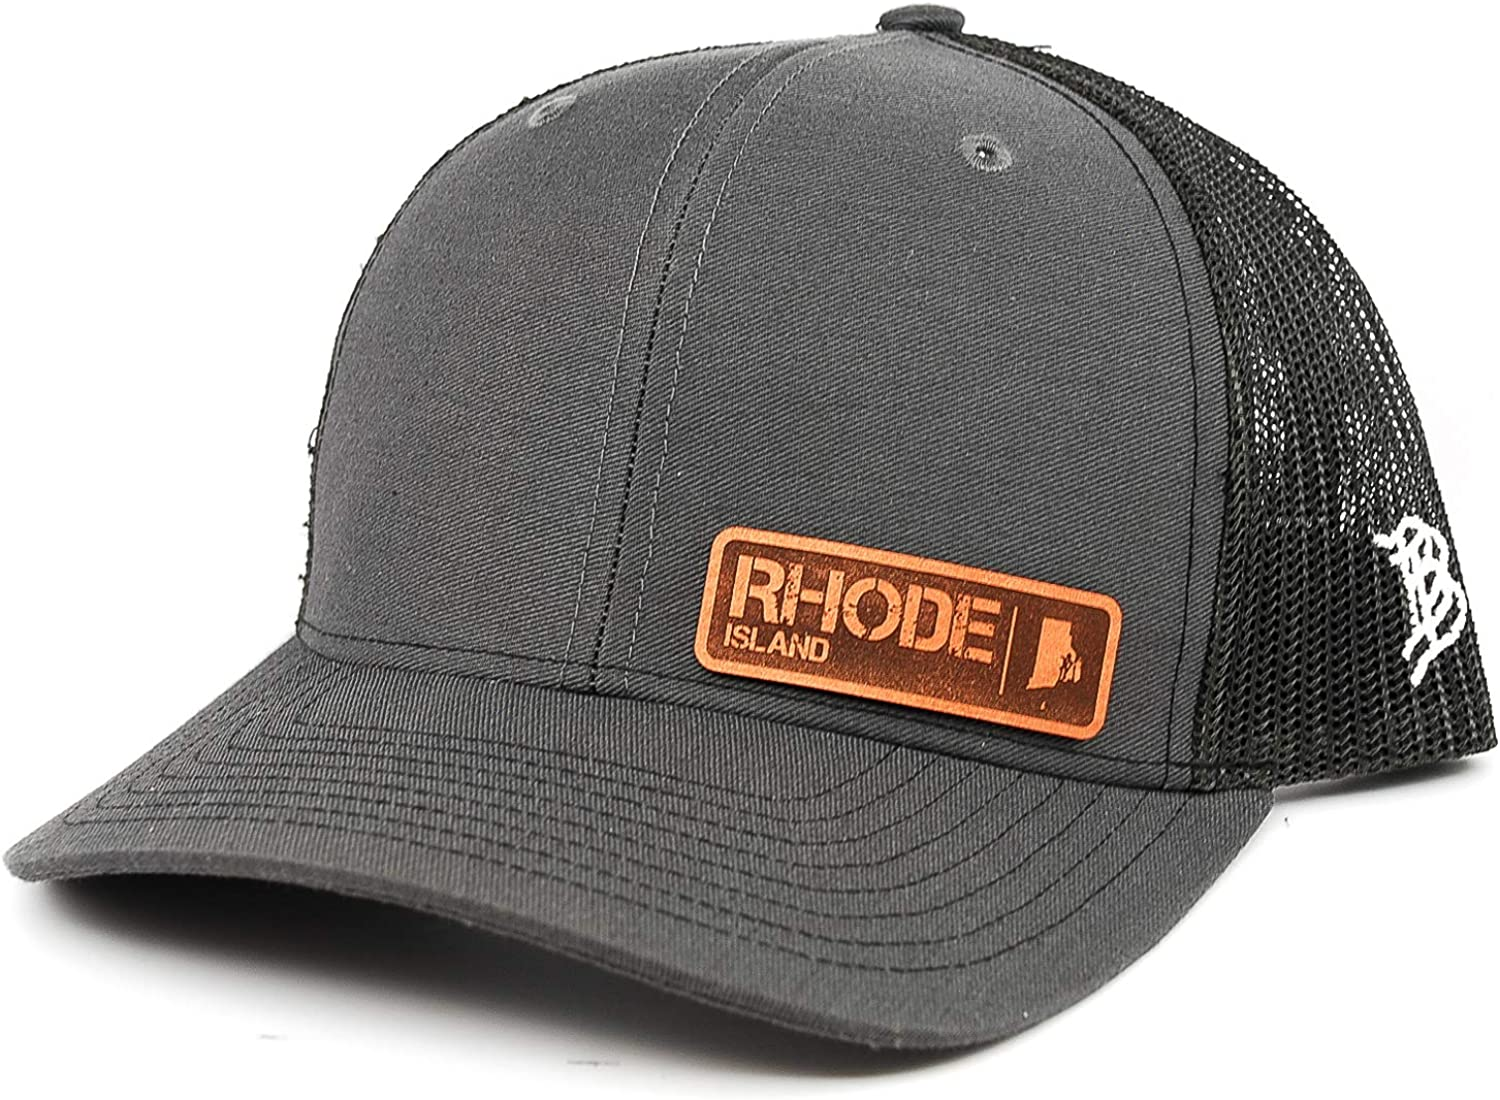 OSFA//Charcoal Branded Bills /'Rhode Island Native Leather Patch Hat Curved Trucker